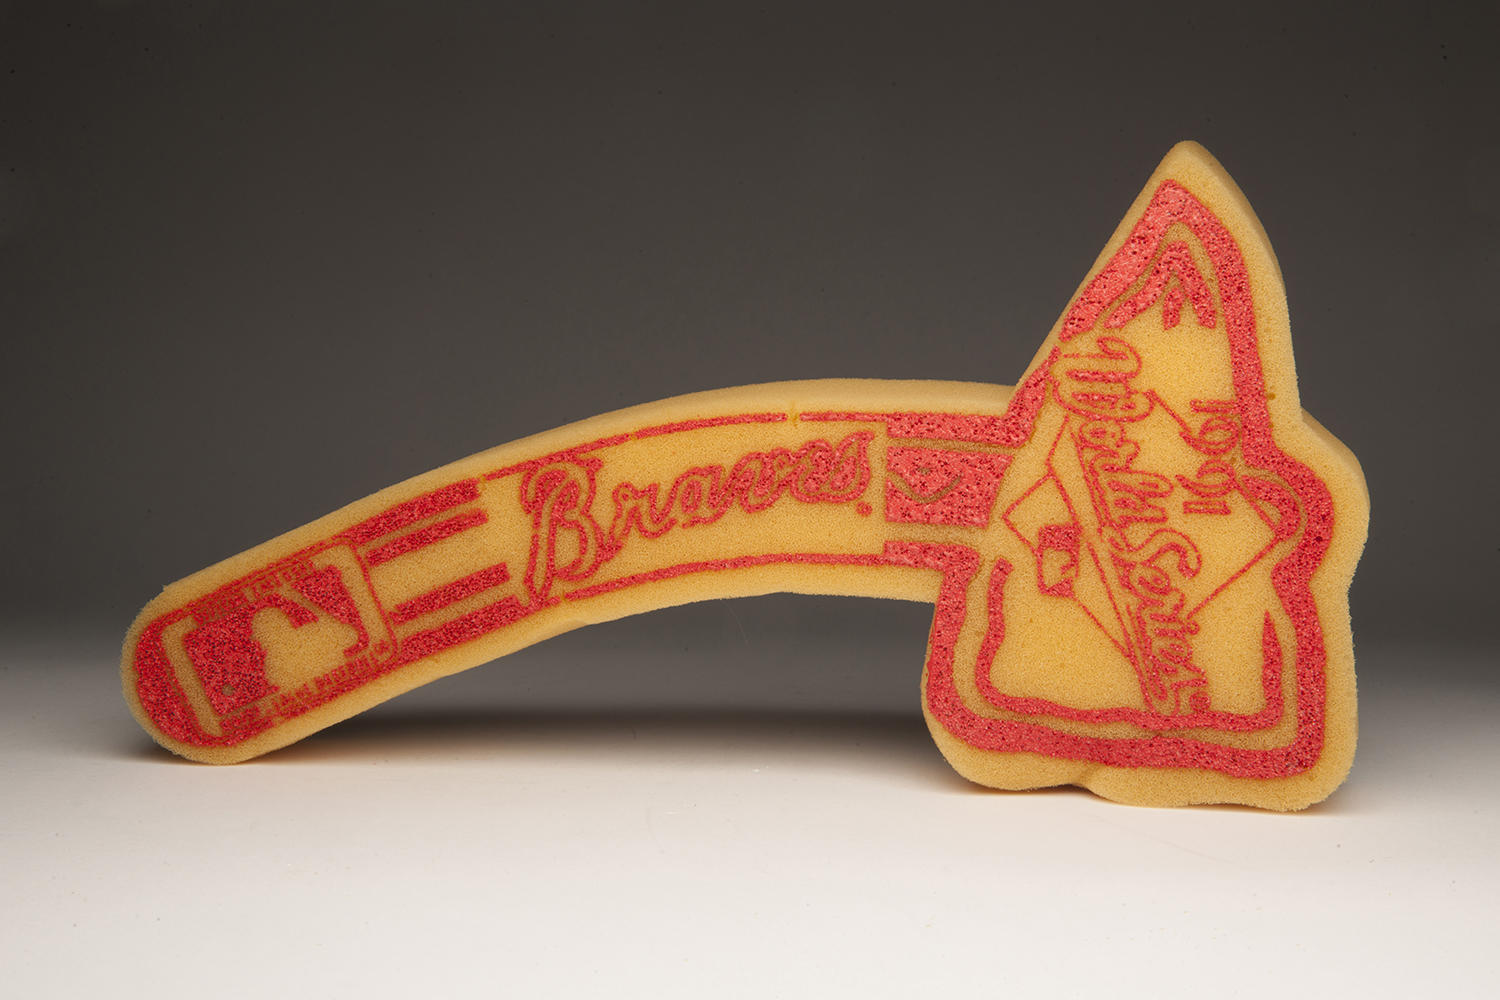 "Braves fans, known for their 'tomahawk chop', used this foam tomahawk to cheer on their team during the 1991 World Series. <a href=""http://collection.baseballhall.org/islandora/object/islandora%3A262562"">PASTIME</a> (Milo Stewart Jr. / National Baseball Hall of Fame)"